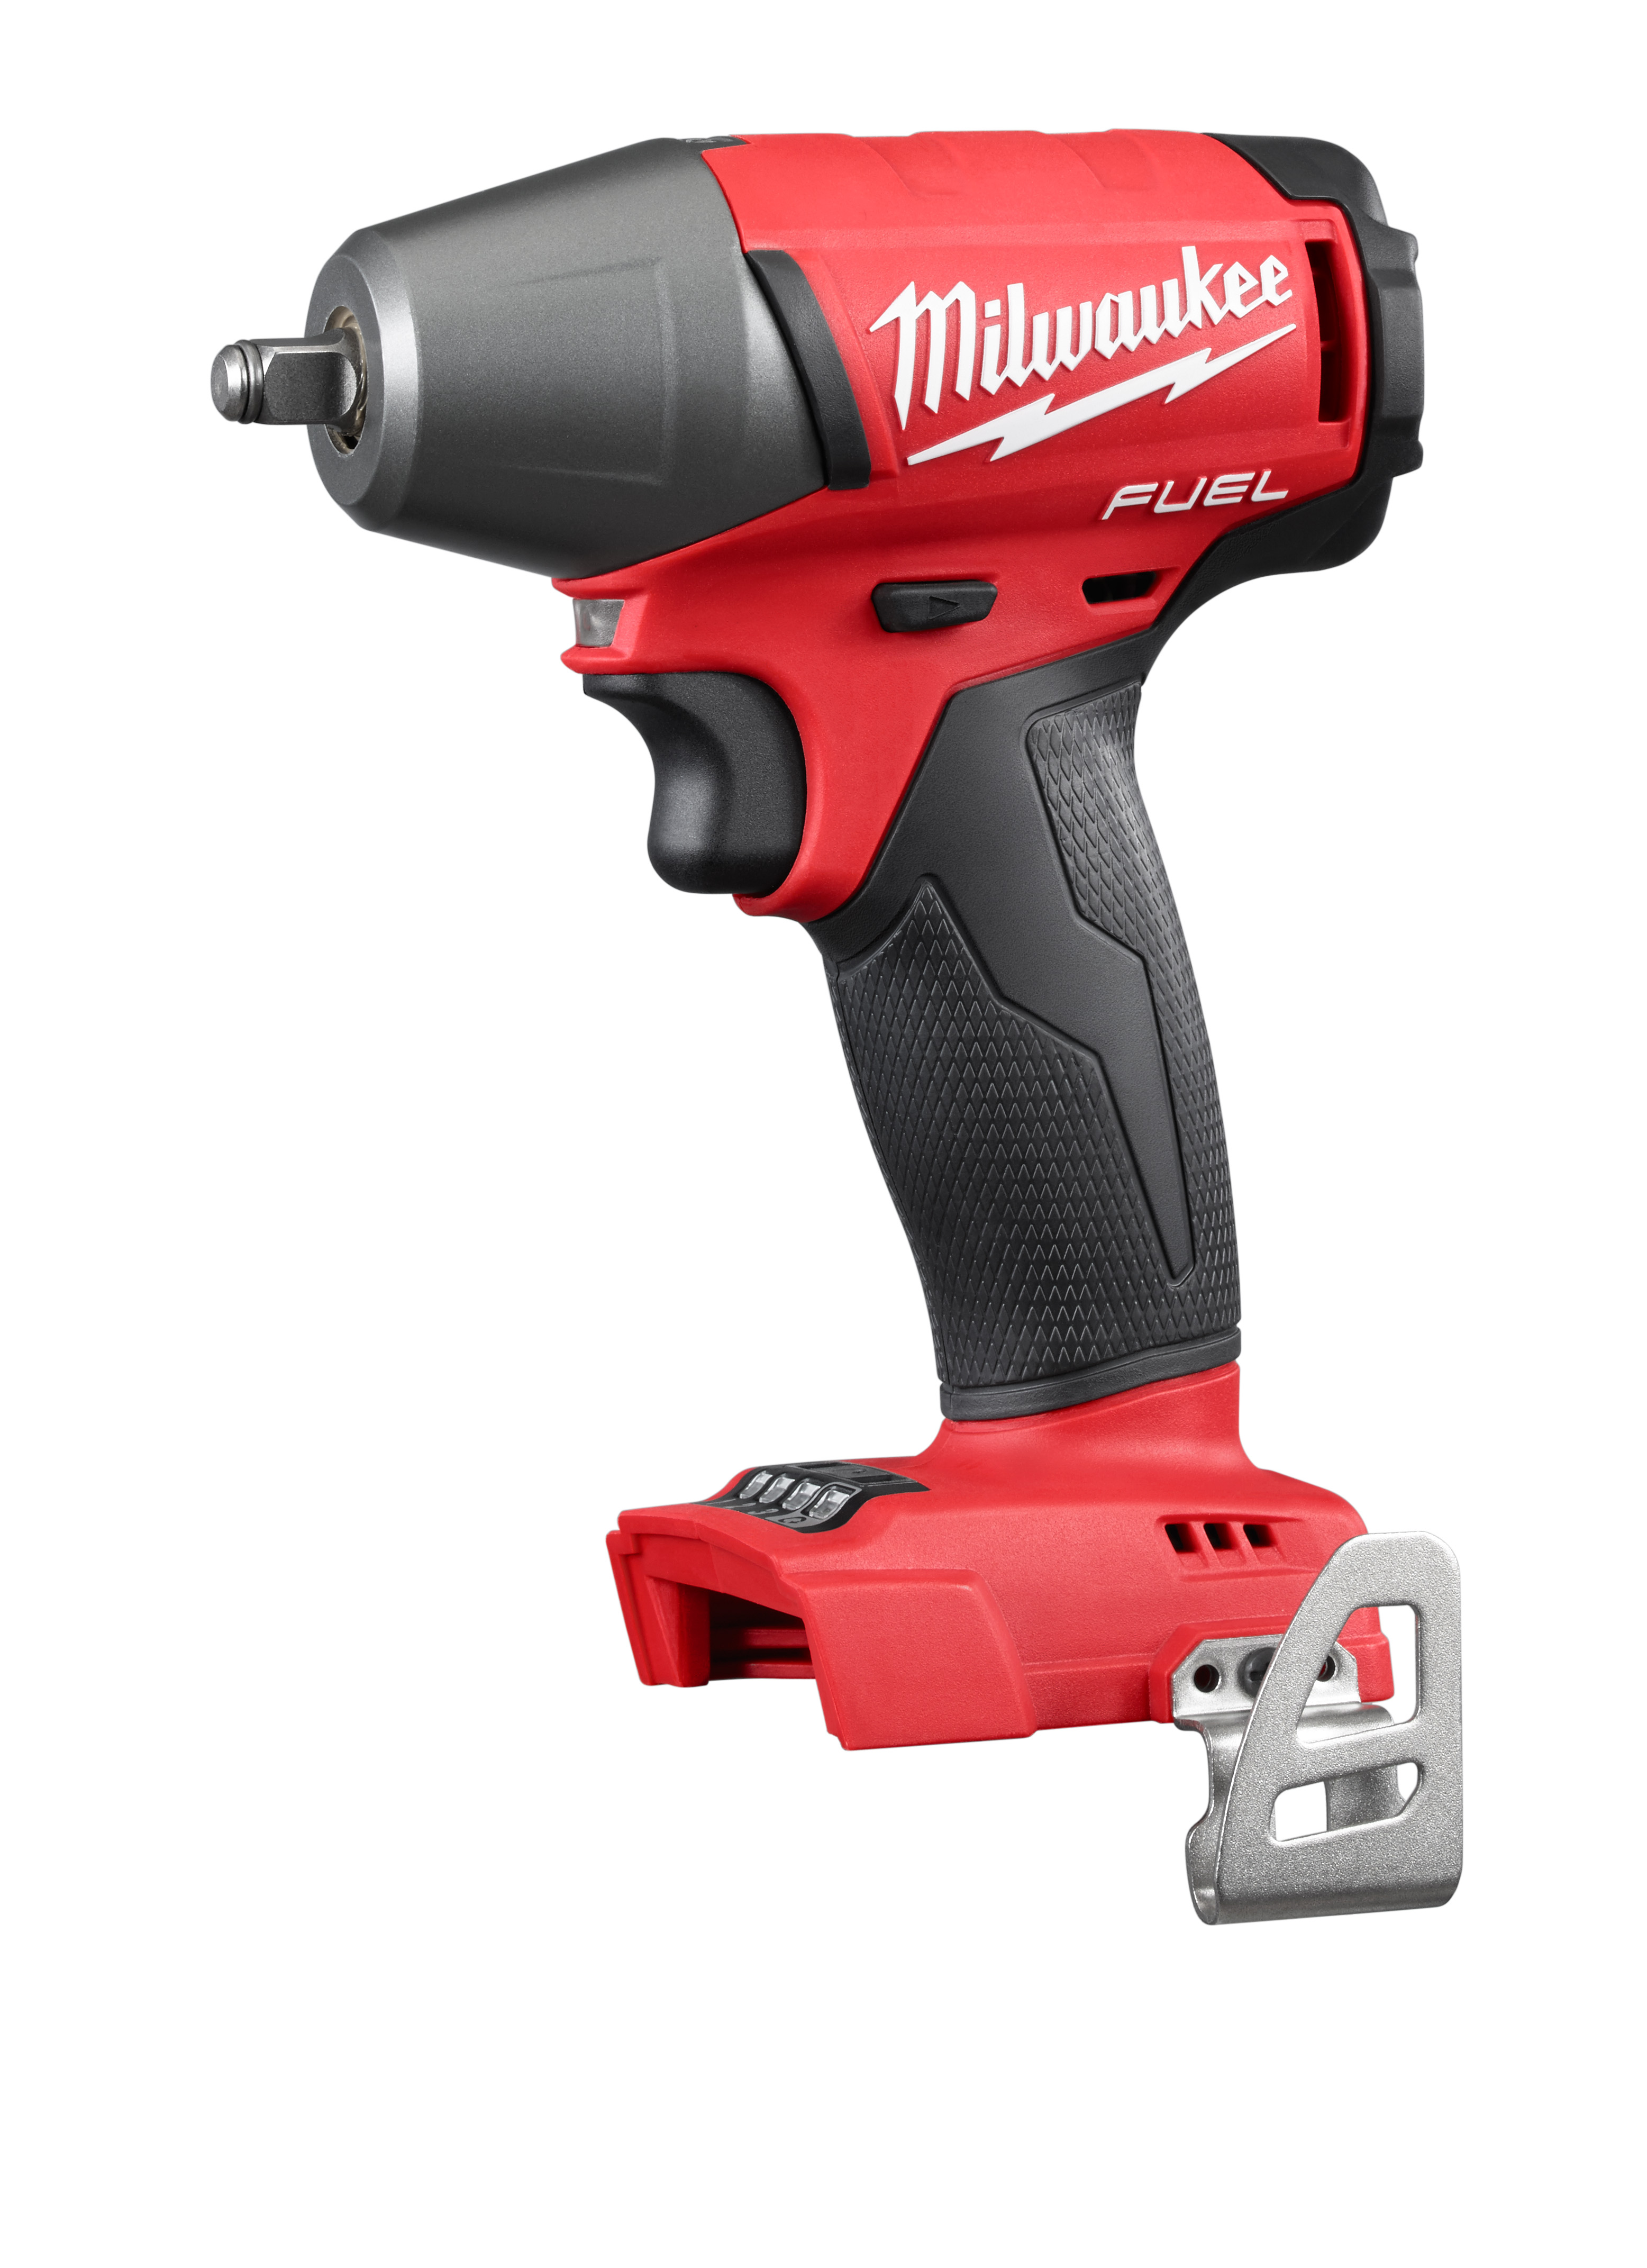 Milwaukee® M18™ FUEL™ 2754-20 Compact Cordless Impact Wrench With Friction Ring, 3/8 in Straight Drive, 0 to 3200 bpm, 210 ft-lb Torque, 18 VDC, 5.9 in OAL